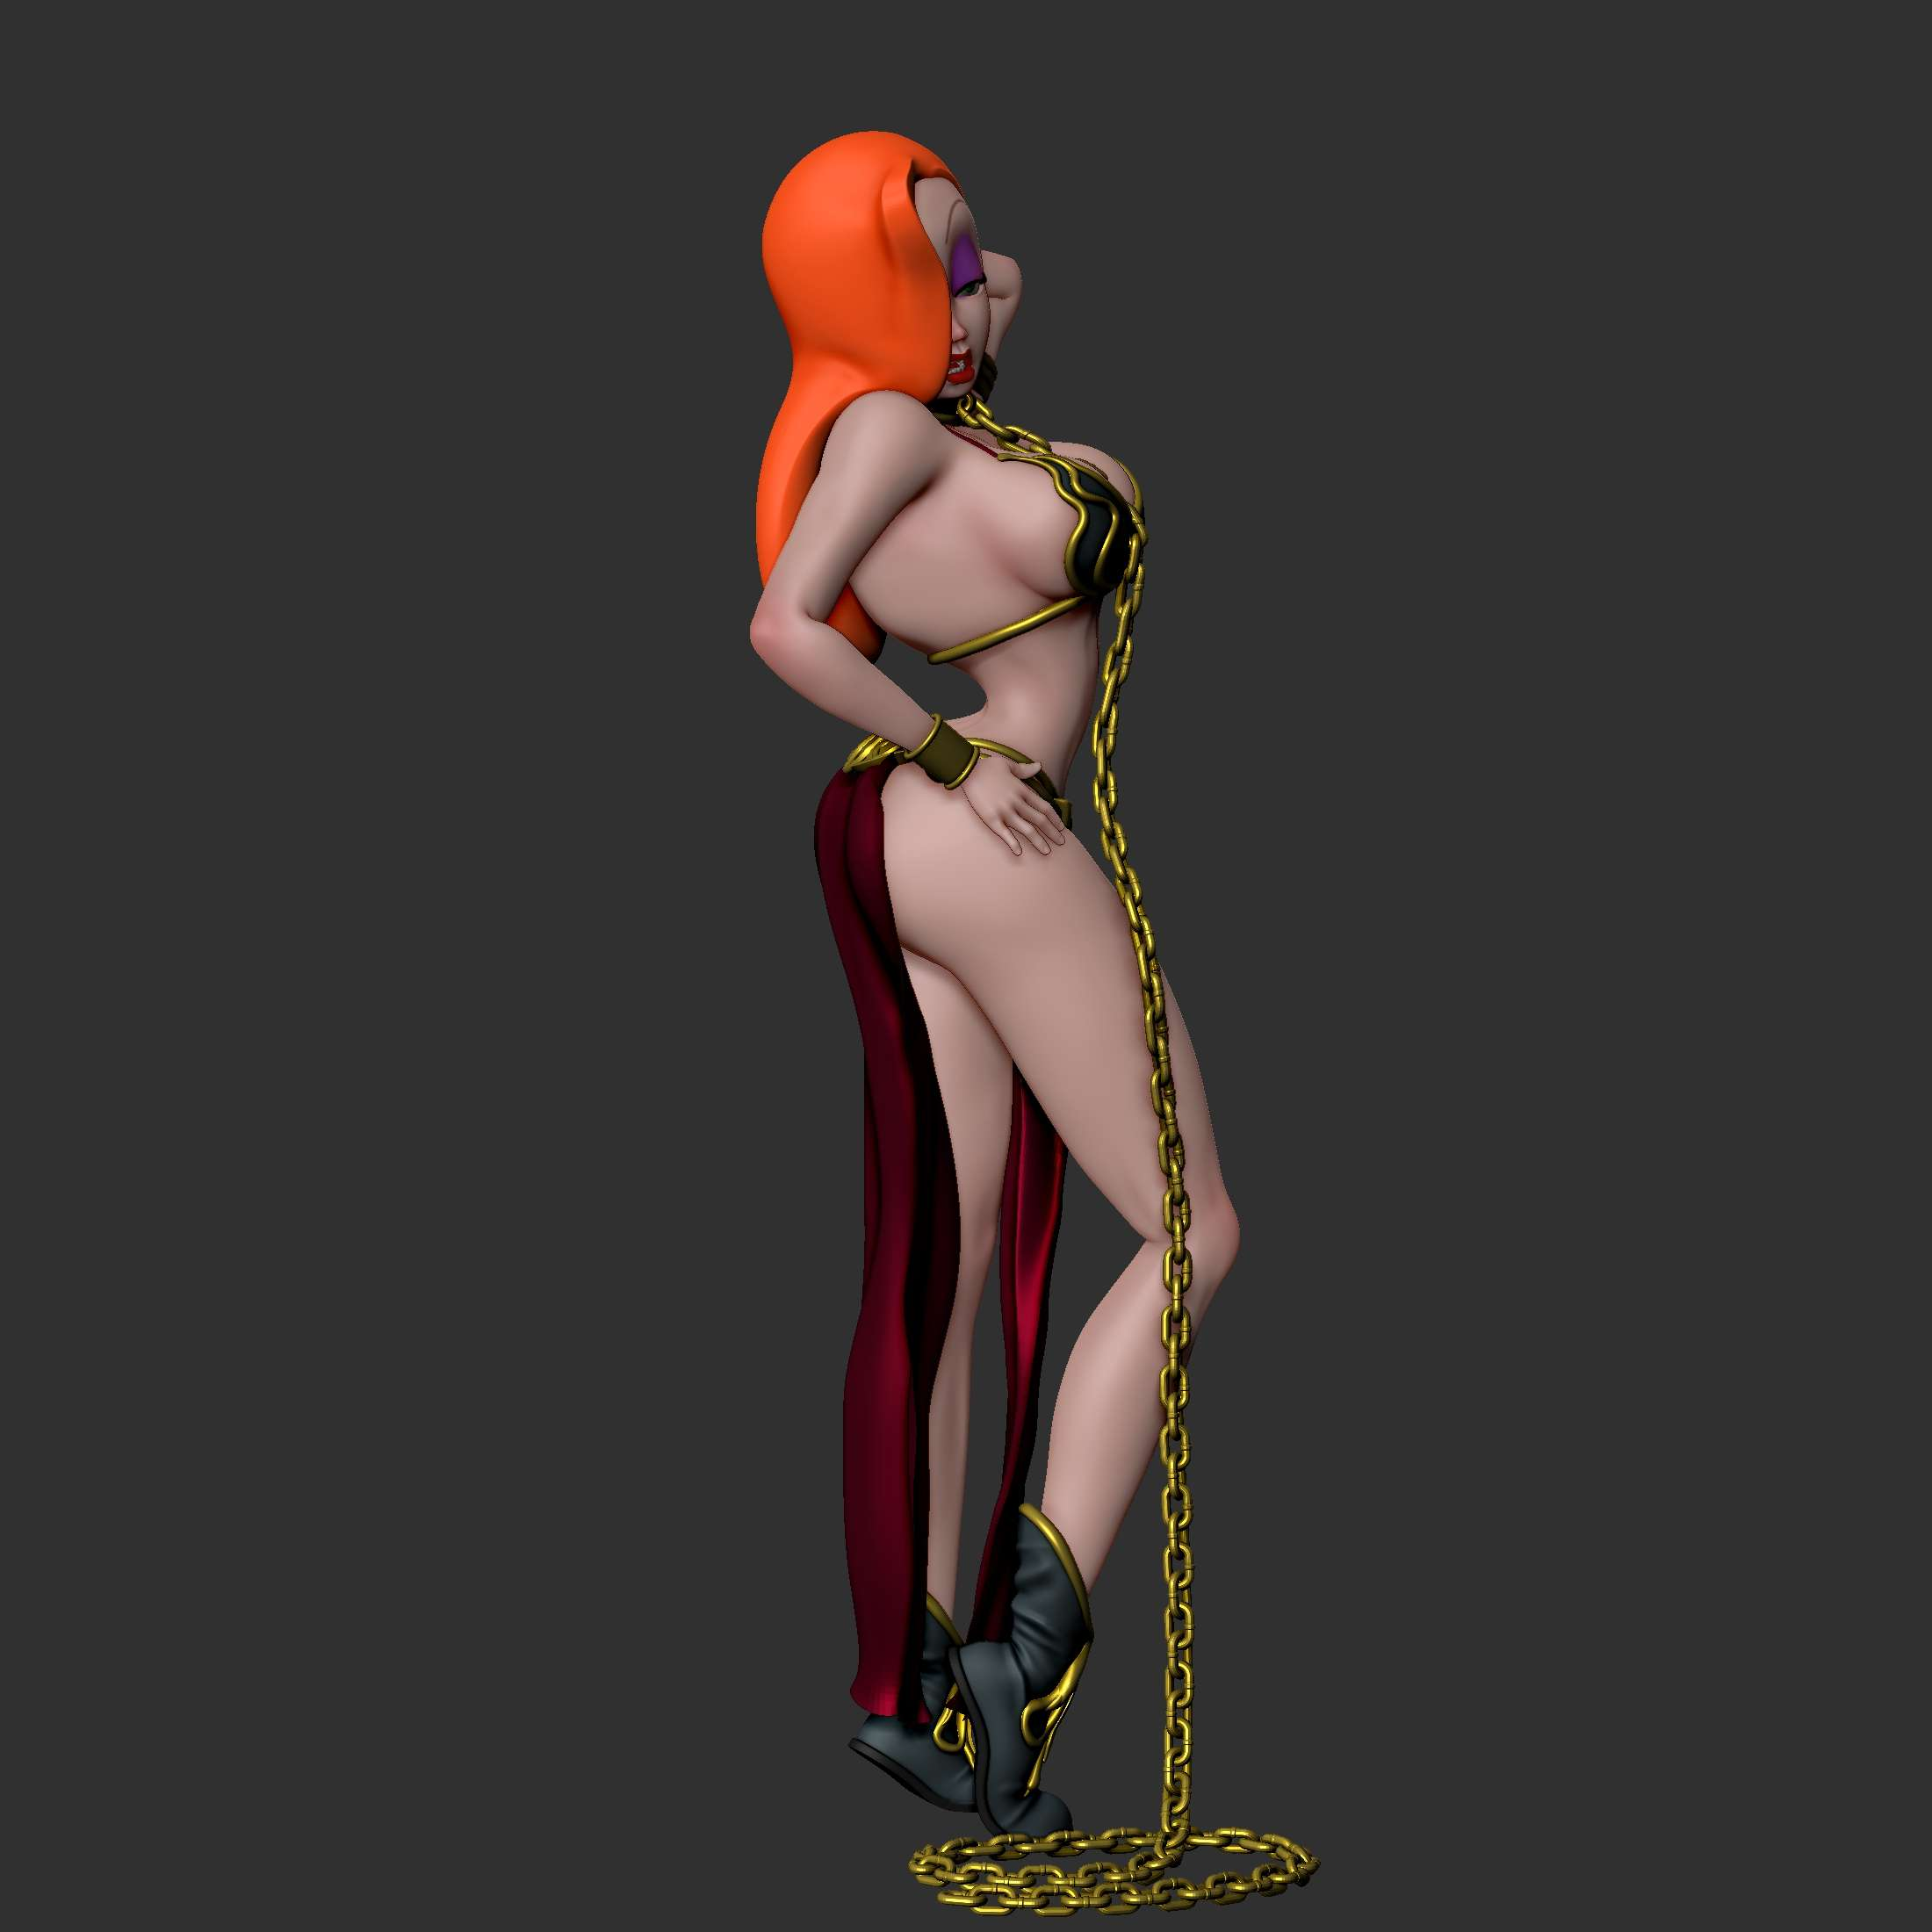 Princess Jessica Slave Girl - Jessica Rabbit Mashup with Slave Leia outfit. As a suggestion, the dress should be made of cloth and chains can be real, but if you want, the file is provided for printing and collage - The best files for 3D printing in the world. Stl models divided into parts to facilitate 3D printing. All kinds of characters, decoration, cosplay, prosthetics, pieces. Quality in 3D printing. Affordable 3D models. Low cost. Collective purchases of 3D files.